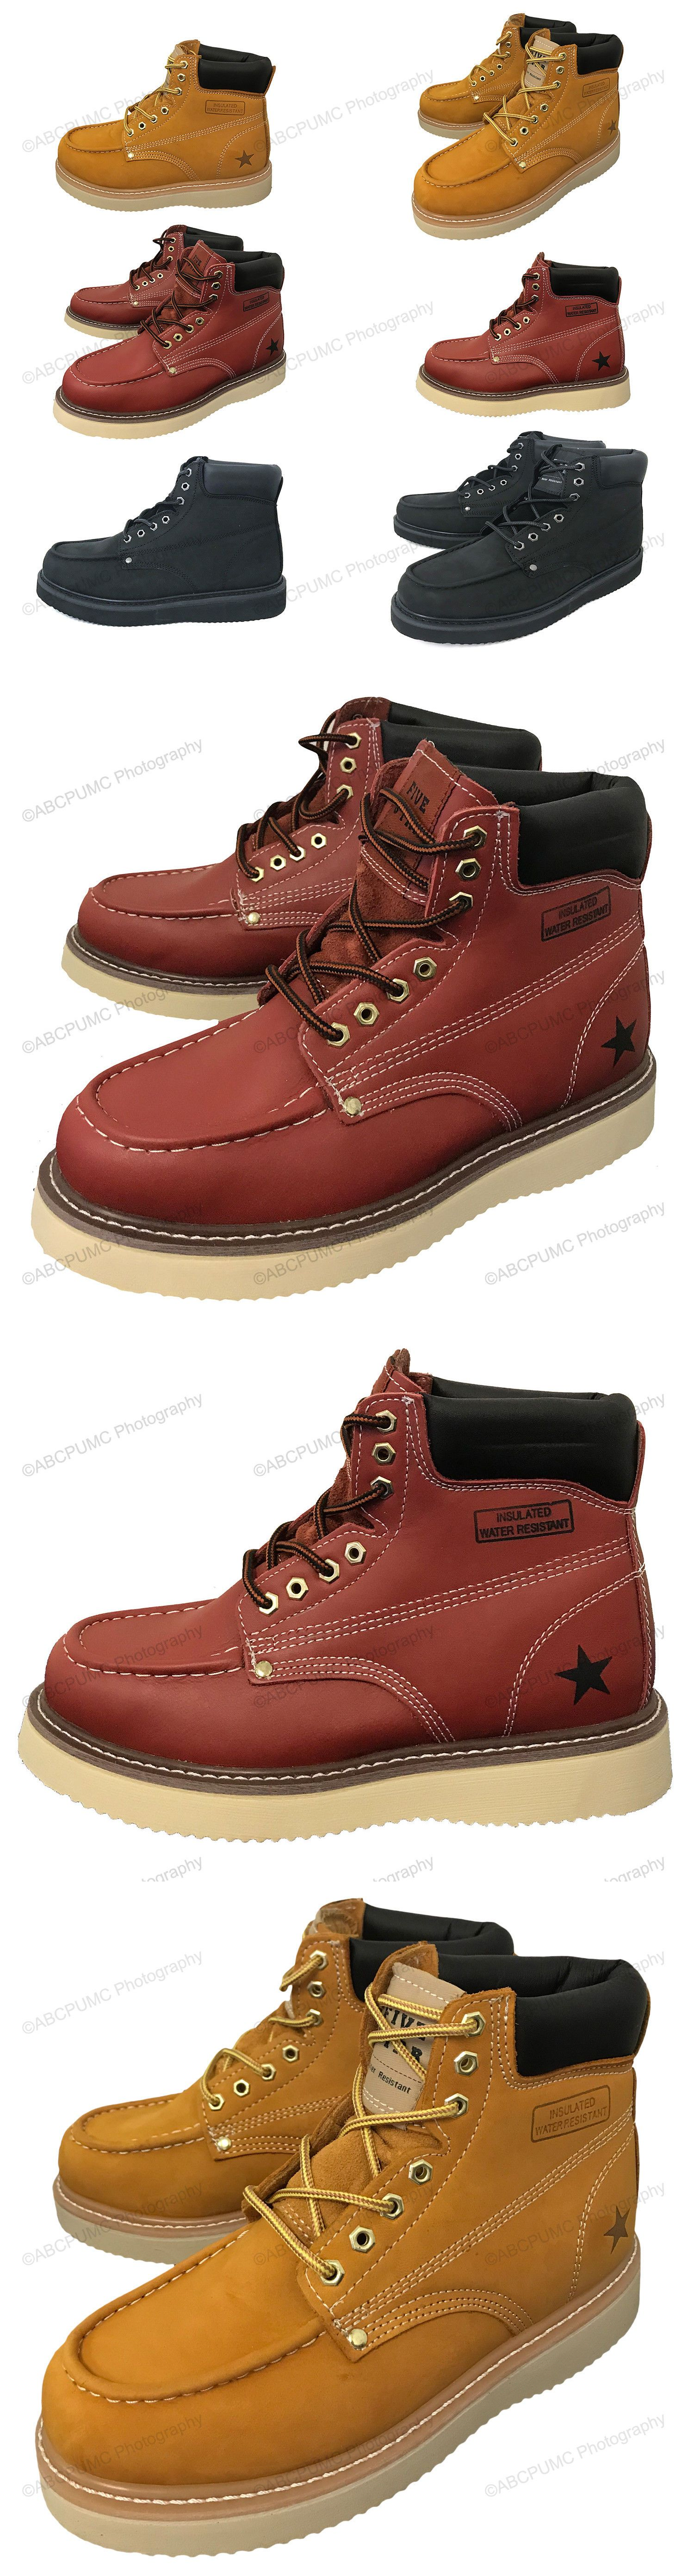 446aebb1cdd Casual Shoes 24087: Mens Moc Toe Boots 6 Leather Water Oil Resistant ...